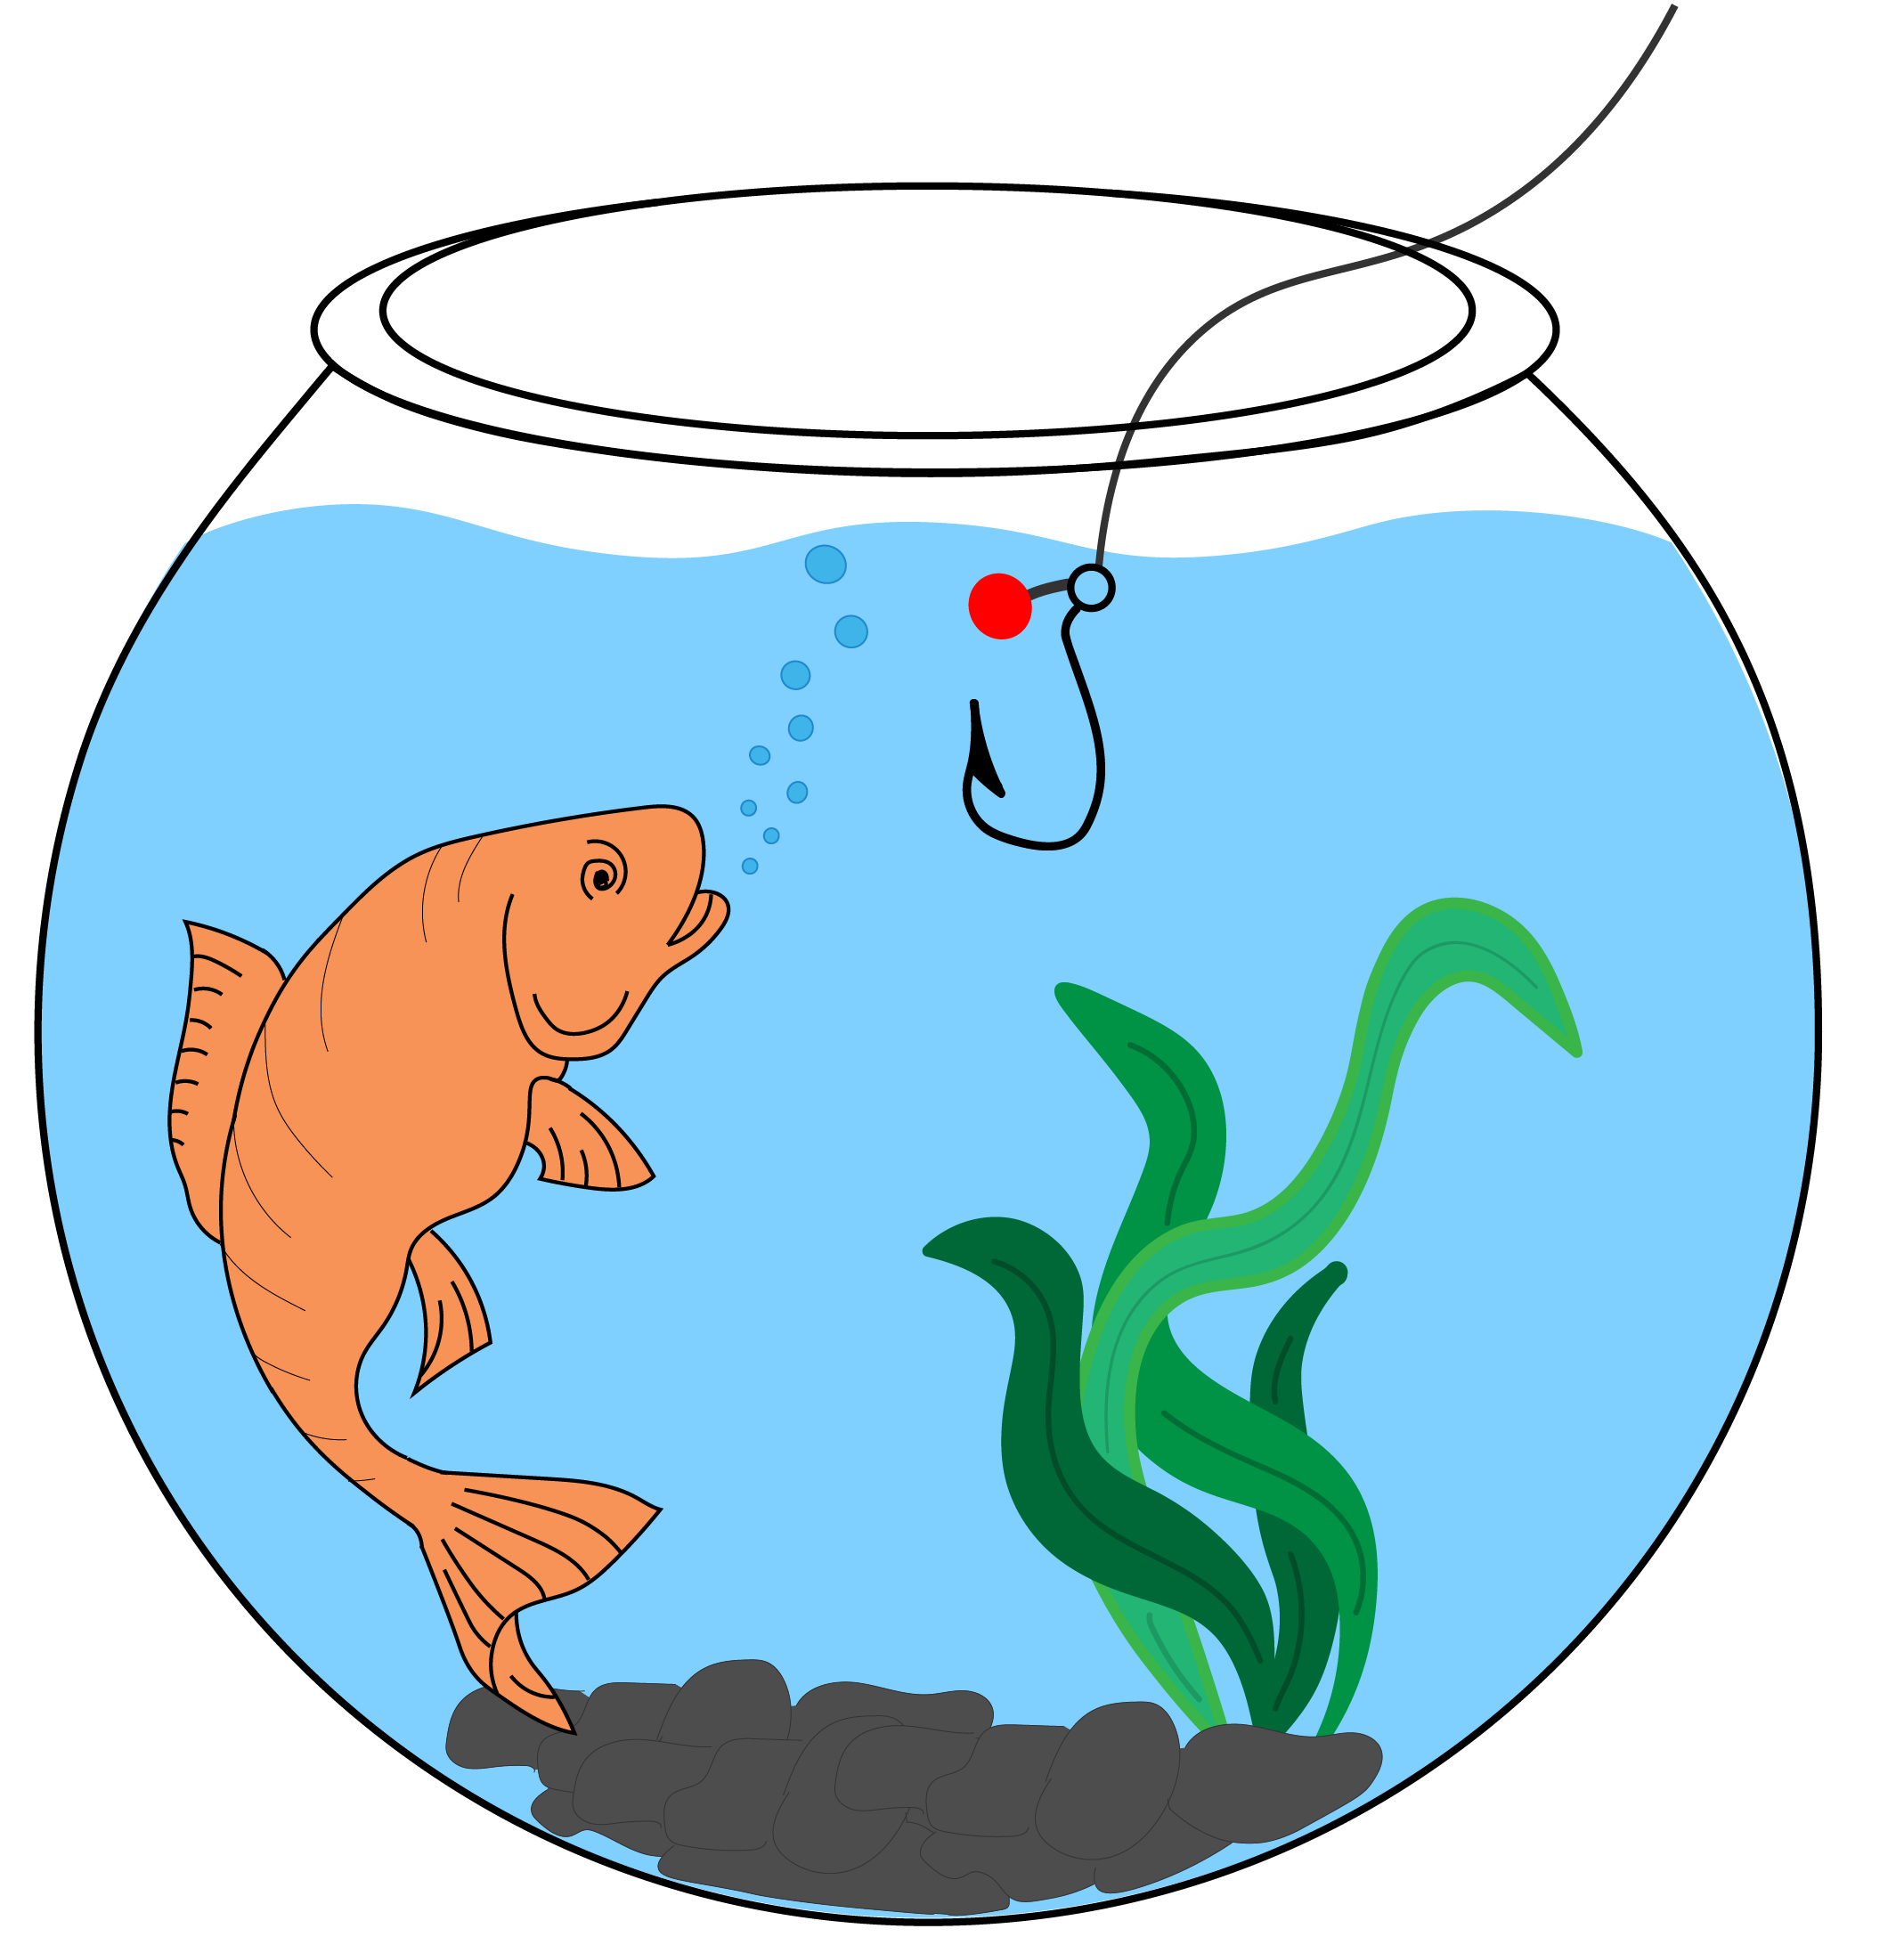 cartoon bowl of a fish